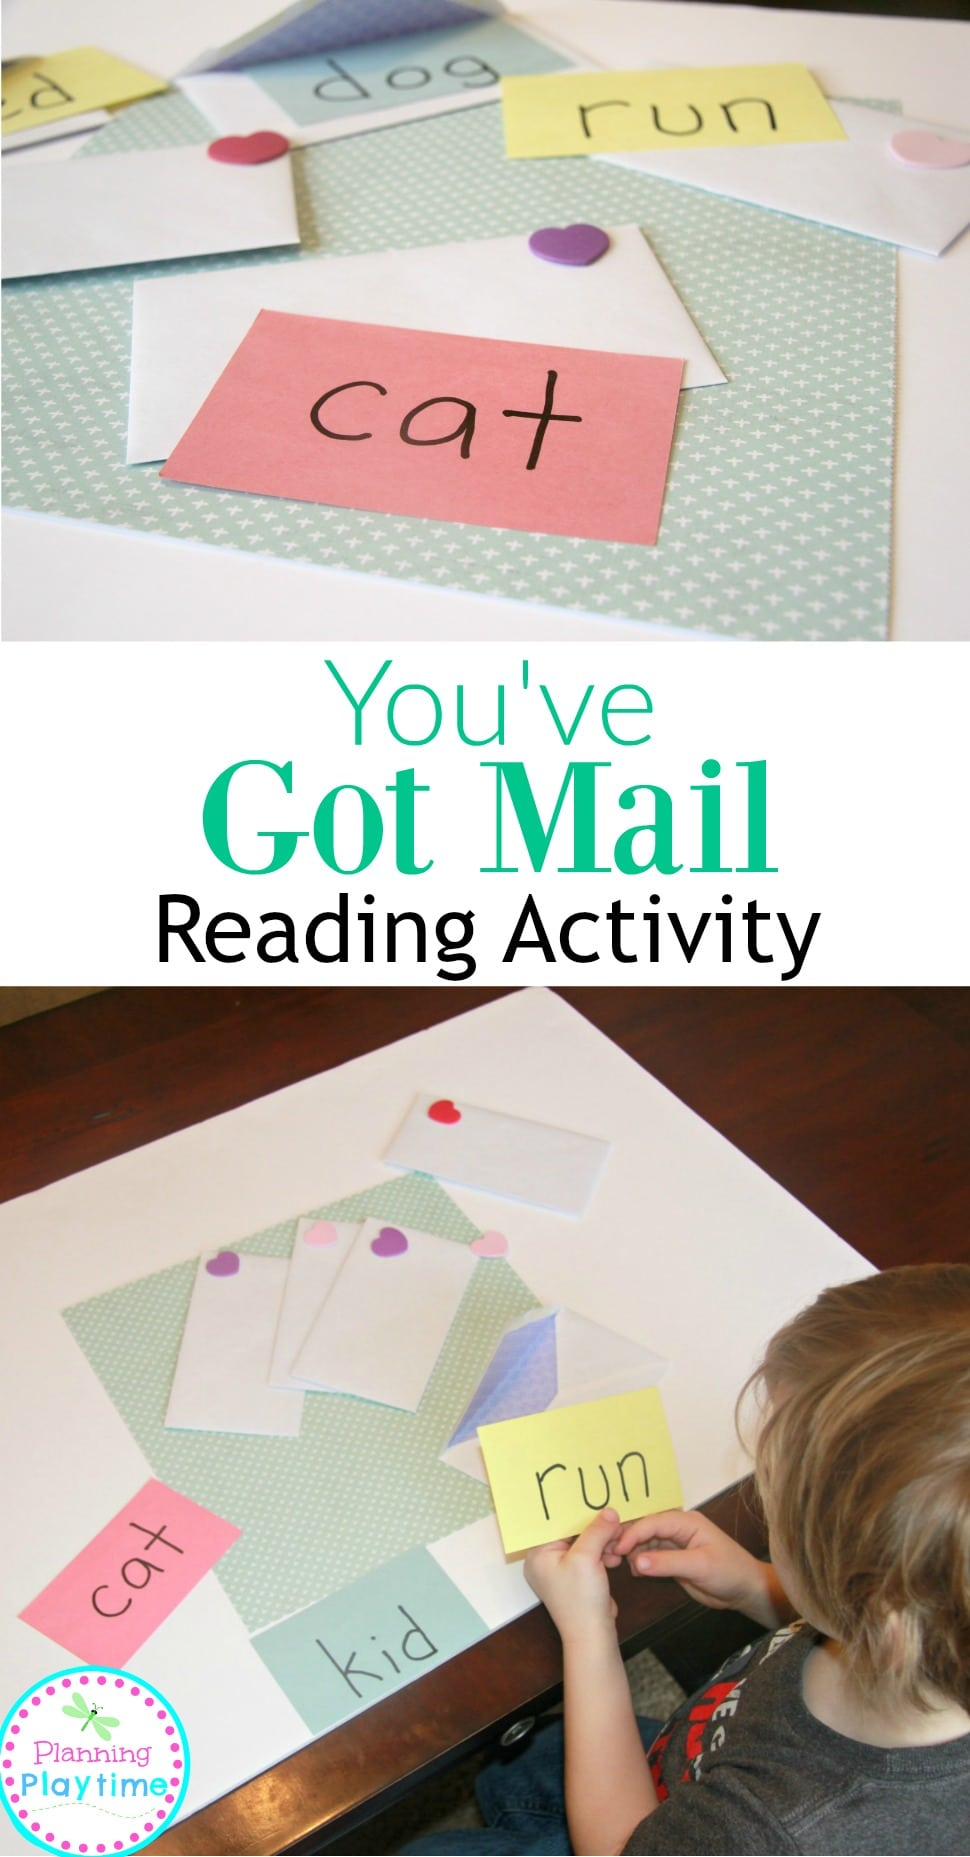 You've Got Mail Reading Activity for Kids